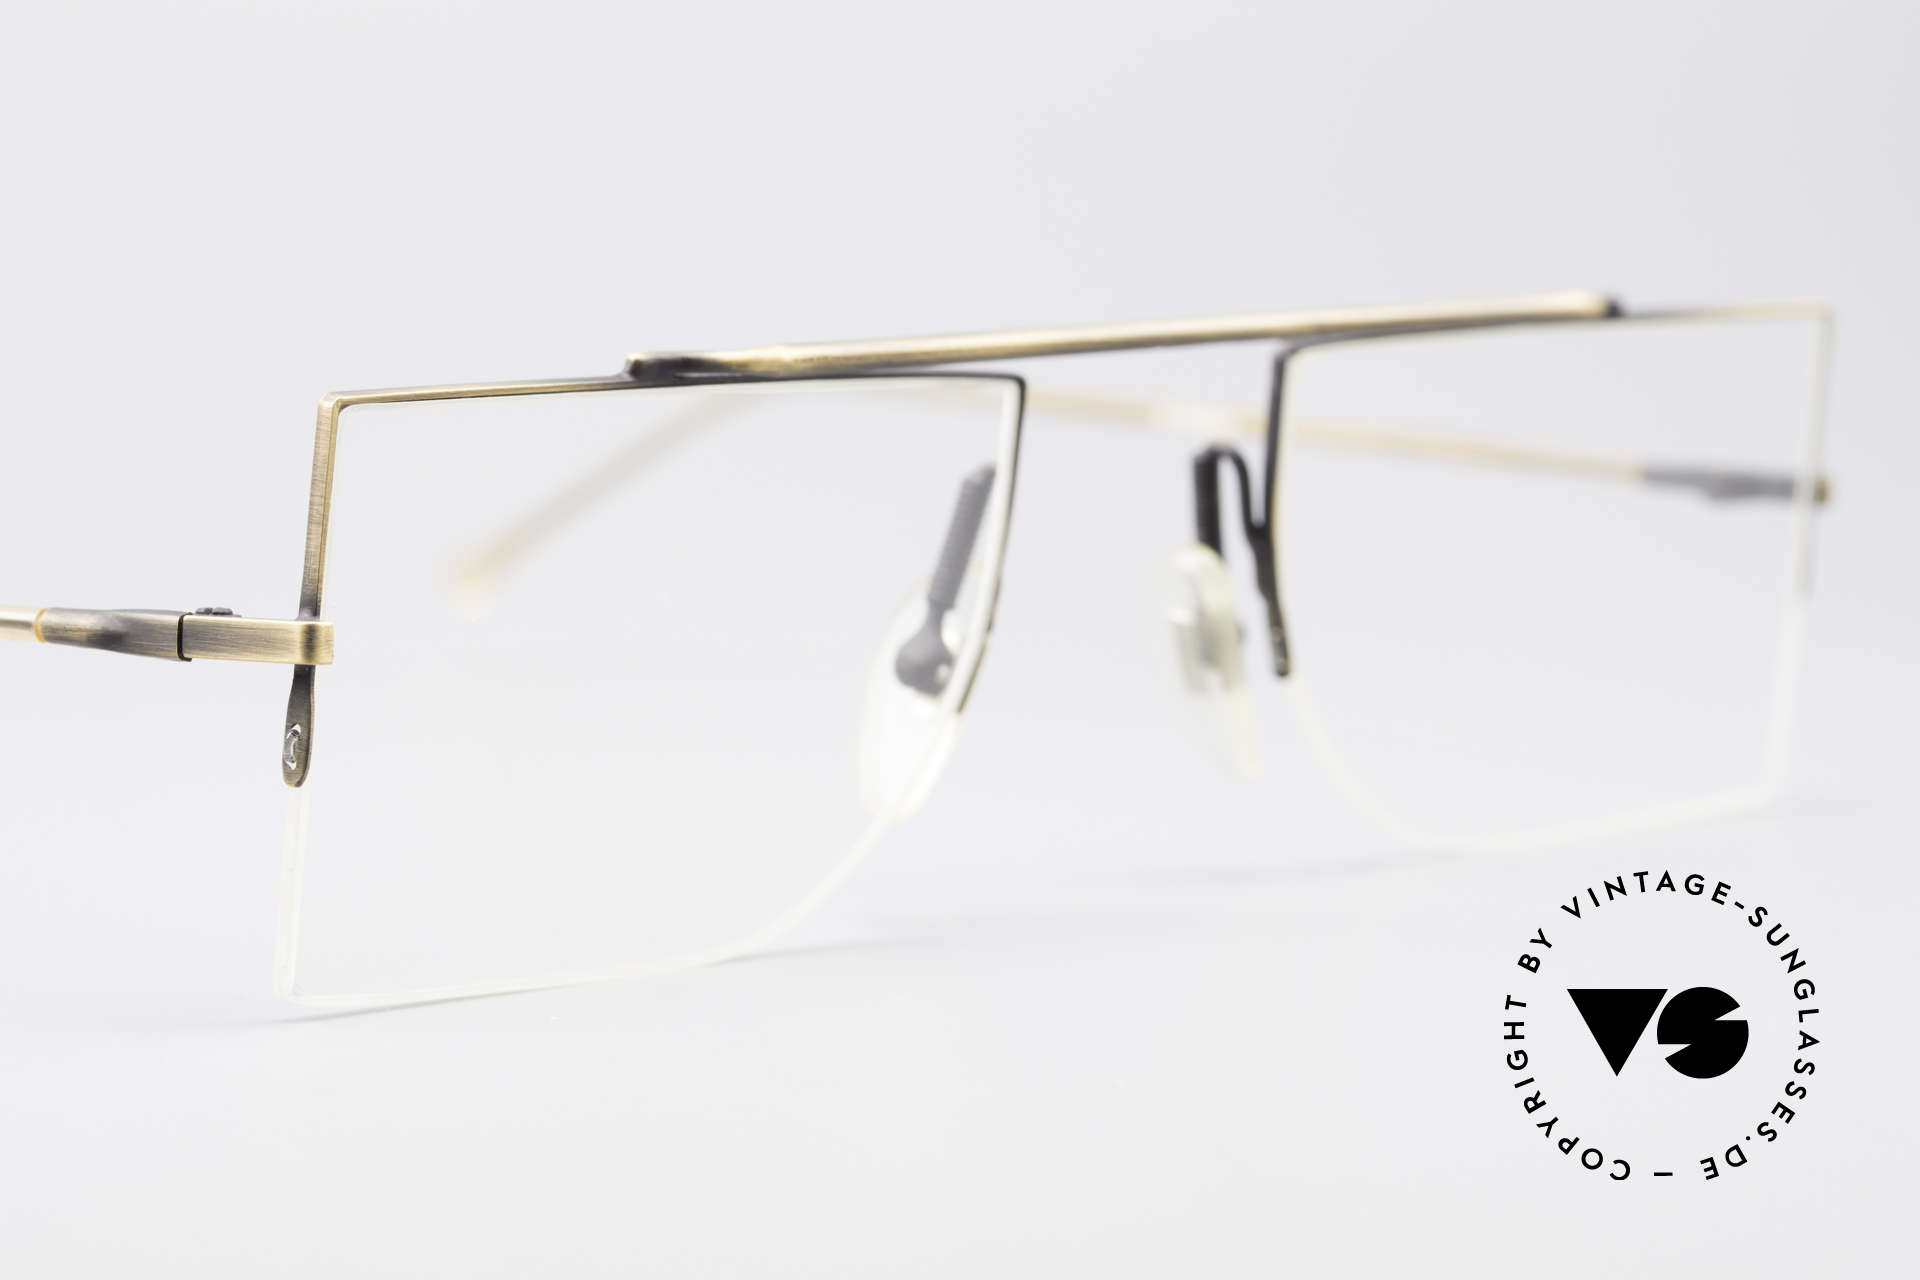 L.A. Eyeworks BURBANK 442 True Vintage Eyeglasses, unworn, one of a kind (like all our L.A.E. spectacles), Made for Men and Women